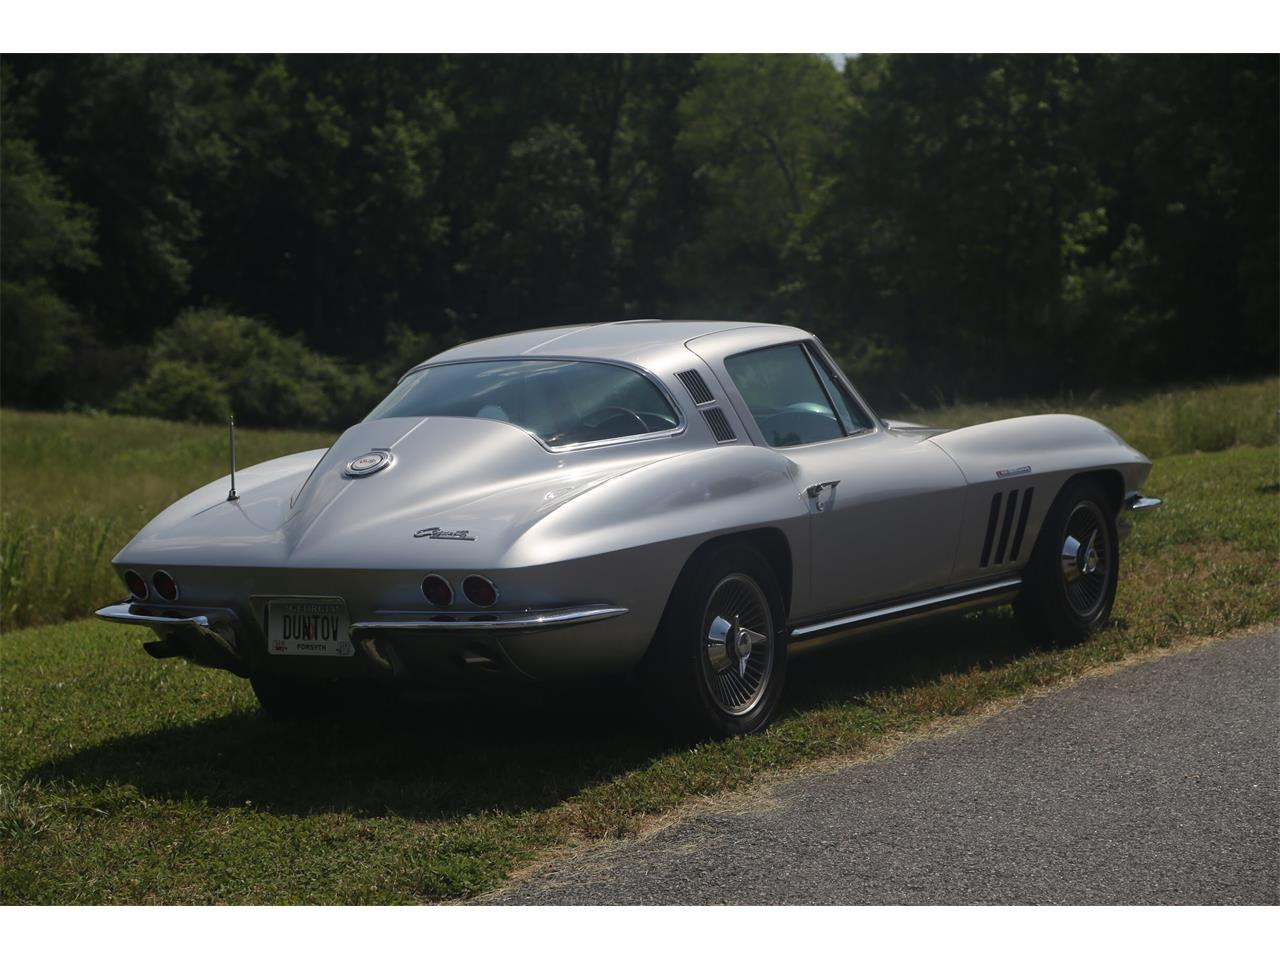 Large Picture of Classic 1965 Chevrolet Corvette located in Suwanee Georgia Auction Vehicle - QCTR